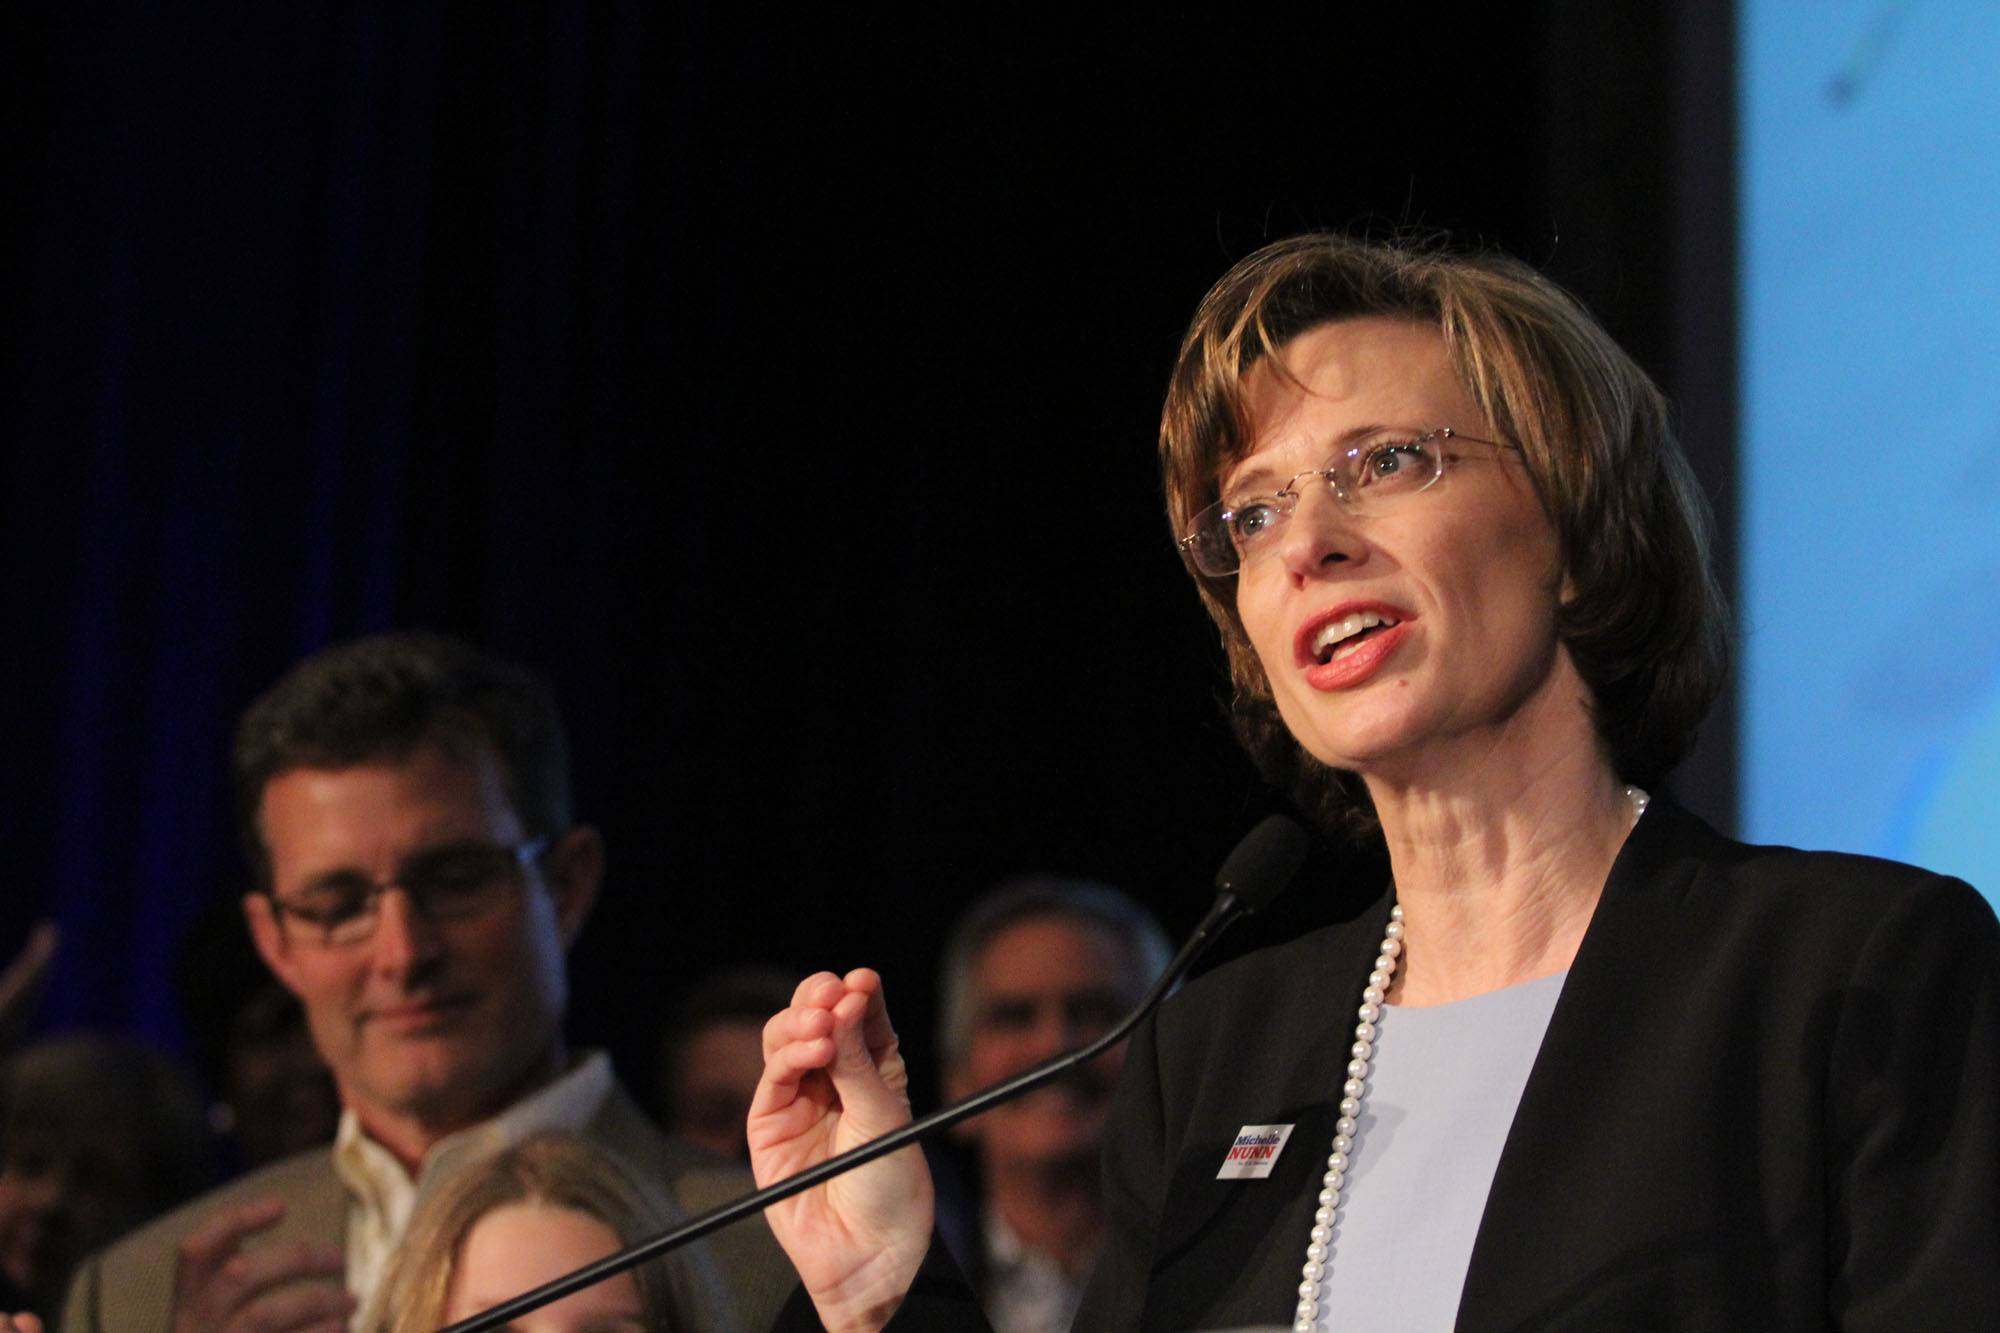 Democratic candidate for Senate Michelle Nunn speaks to supporters after her primary win was announced at an election-night watch party Tuesday in Atlanta.